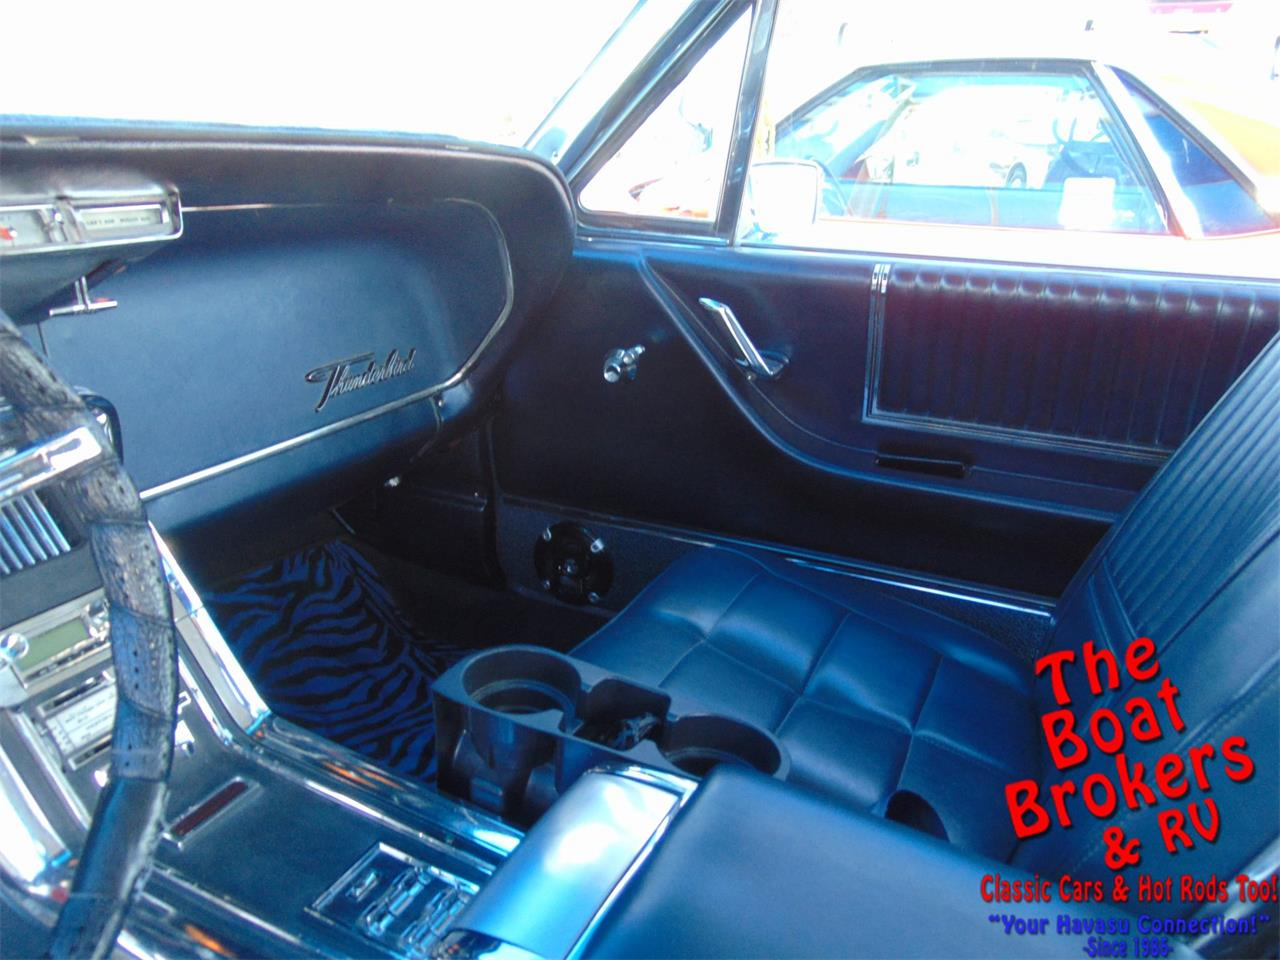 Large Picture of '66 Ford Thunderbird located in Arizona - $15,995.00 Offered by The Boat Brokers - PQRZ